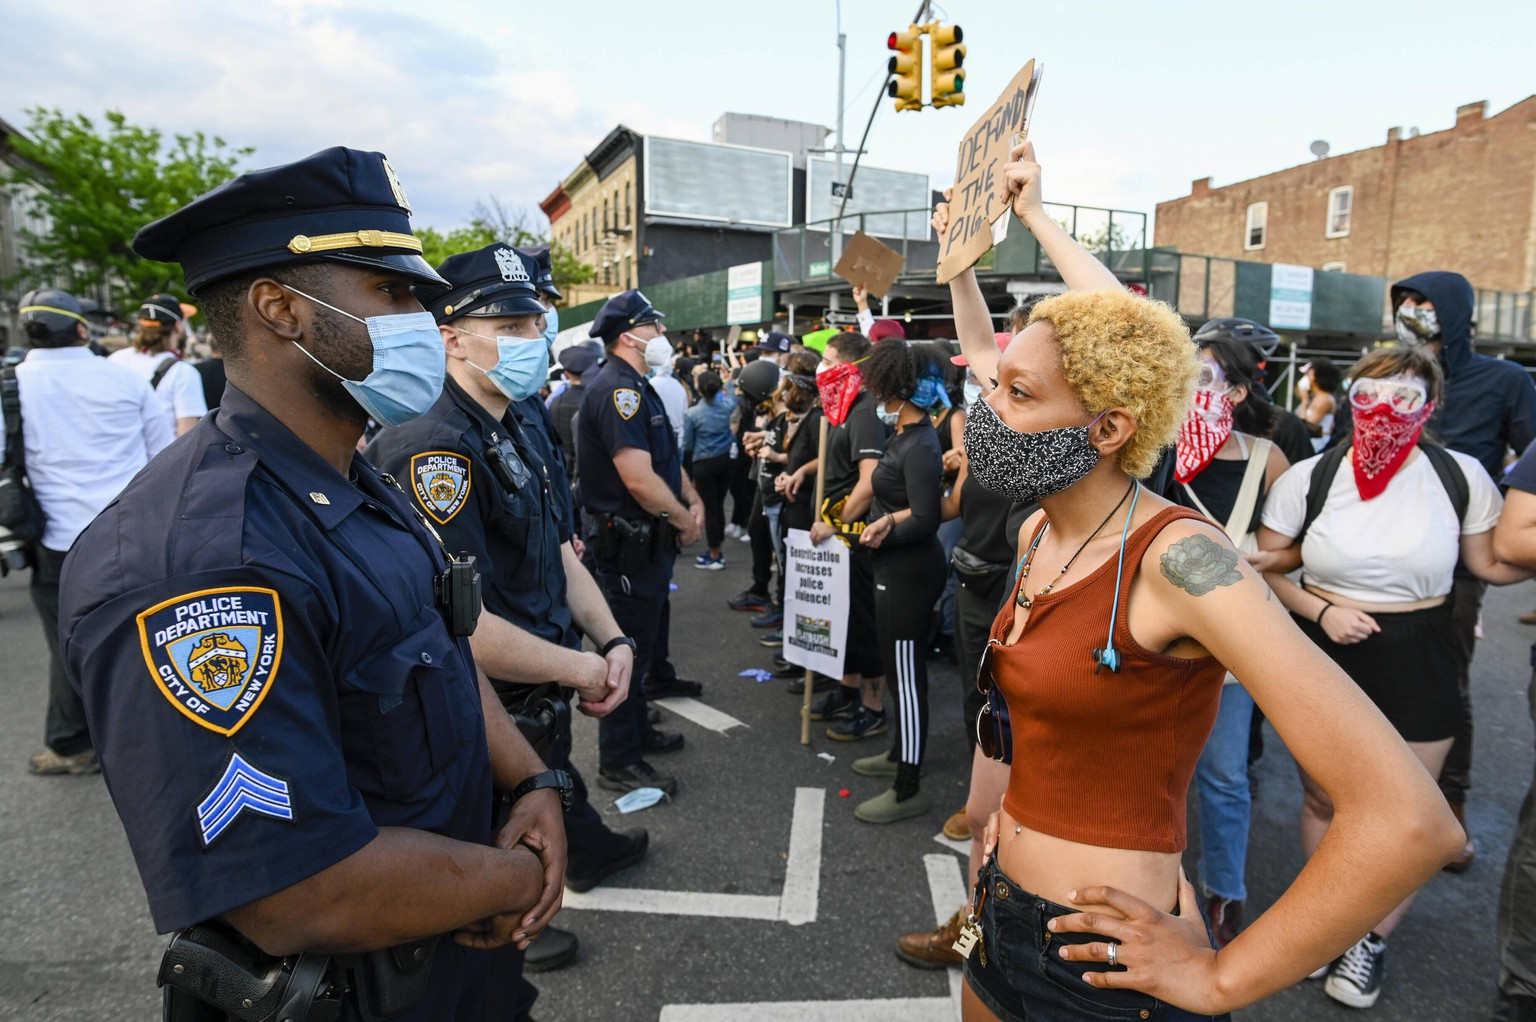 A protester faces police when Black Lives Matter protesters clash with NYPD officers as protests continue over the death of George Floyd at the hands of the Minneapolis police, in New York City on Saturday, May 30, 2020. Former Minneapolis police officer Derek Chauvin was arrested Friday days after video circulated of him holding his knee to George Floyd s neck for more than eight minutes before Floyd died. All four officers involved in the incident also have been fired from the Minneapolis Police Department. PUBLICATIONxINxGERxSUIxAUTxHUNxONLY NYP20200530515 COREYxSIPKIN